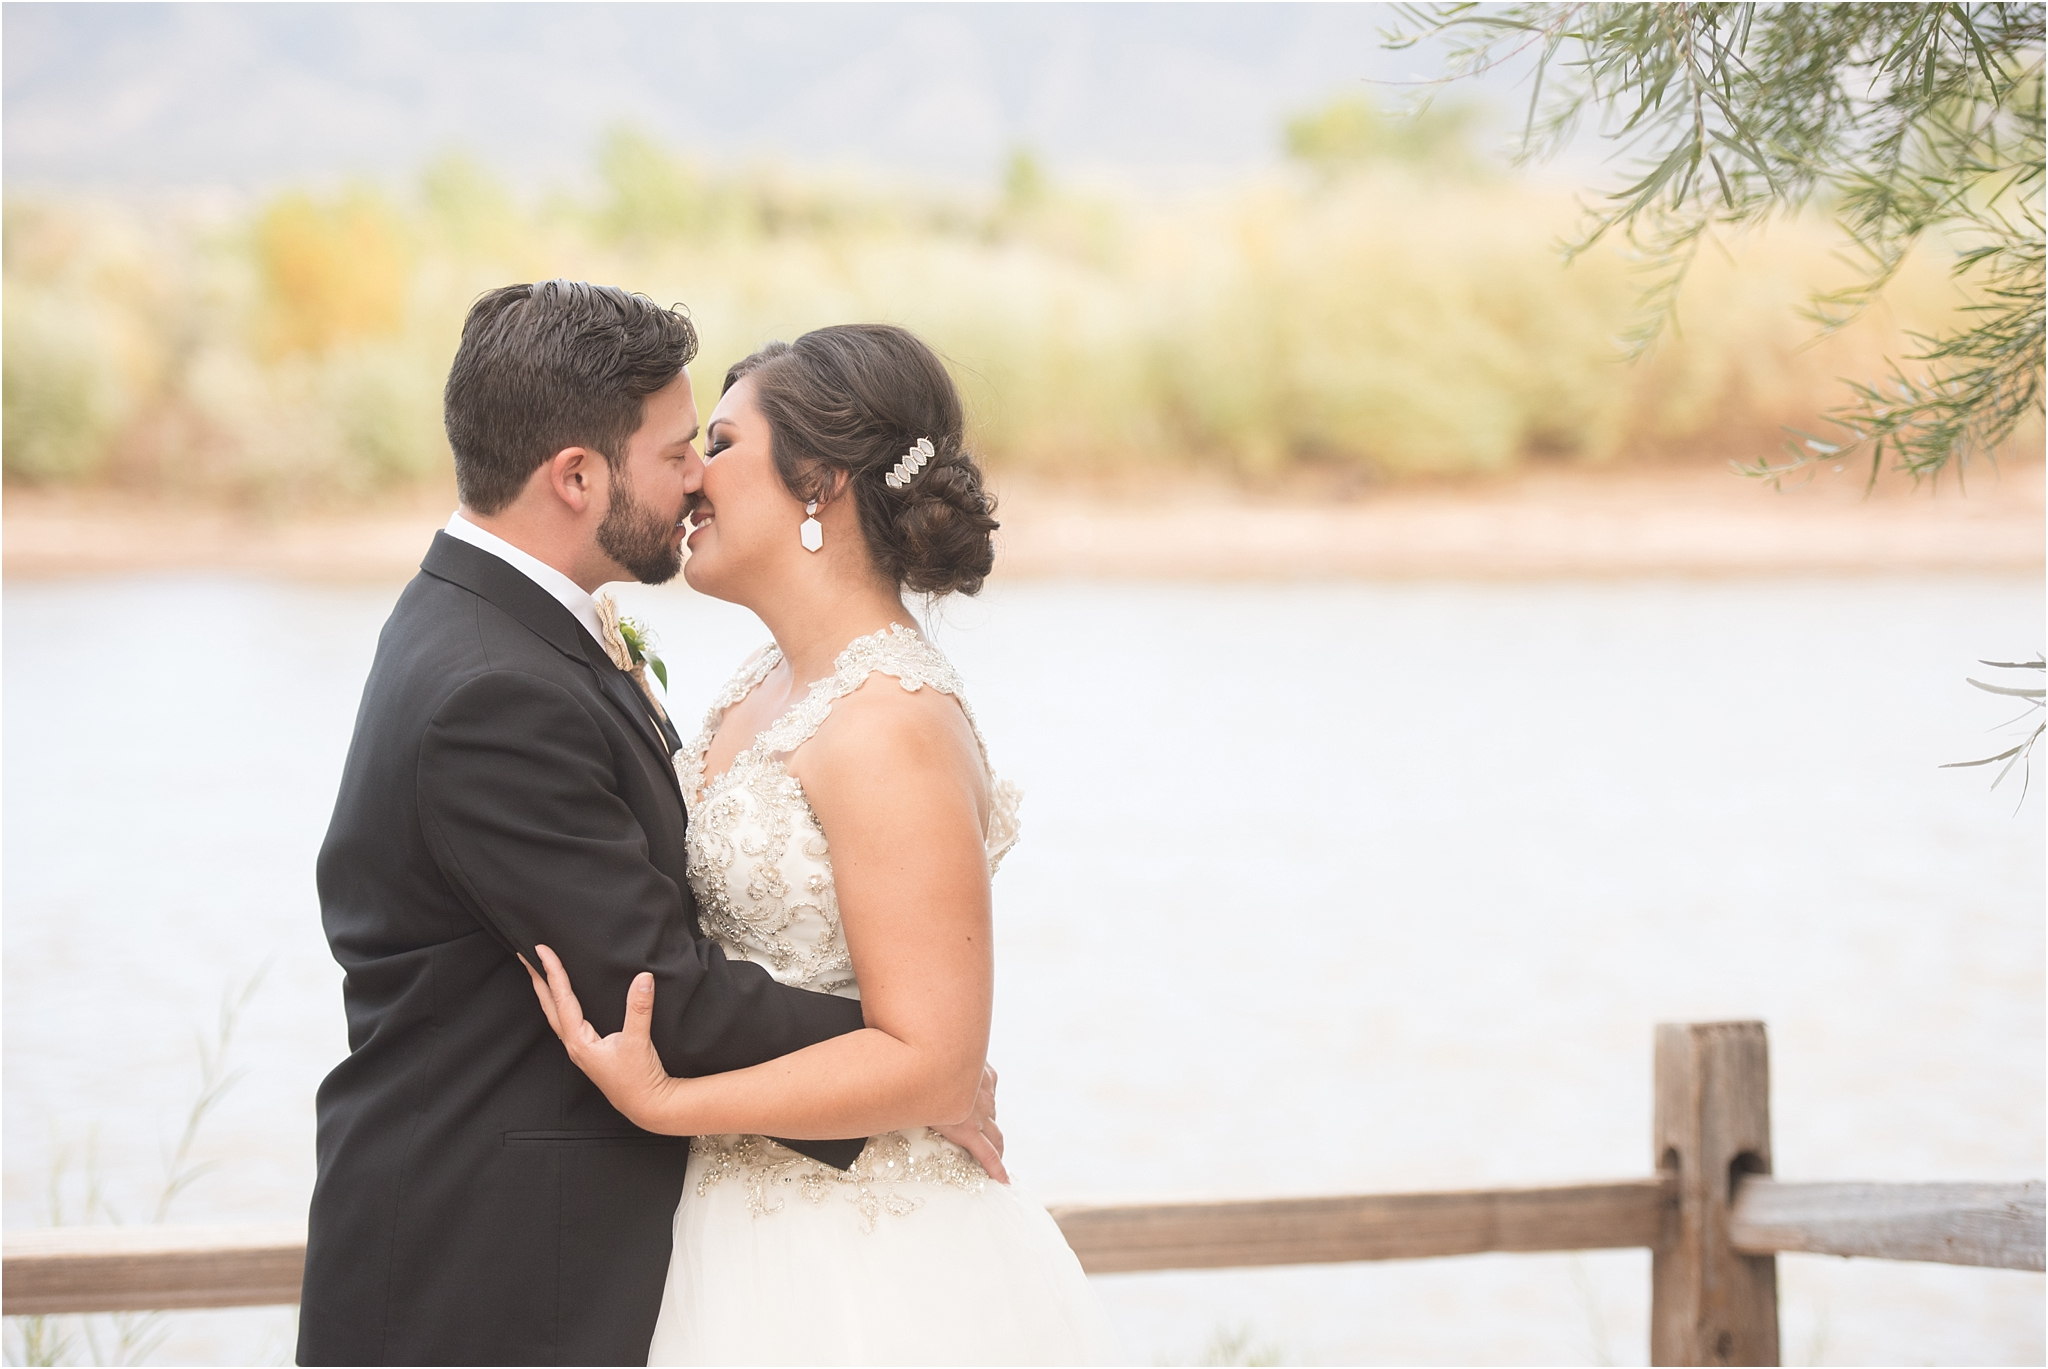 kayla kitts photography - albuquerque wedding photographer - albuquerque venue - hyatt tamaya - hyatt tamaya wedding - c johnson makeup - little sparrow cookies - simply sweet by darci_0034.jpg